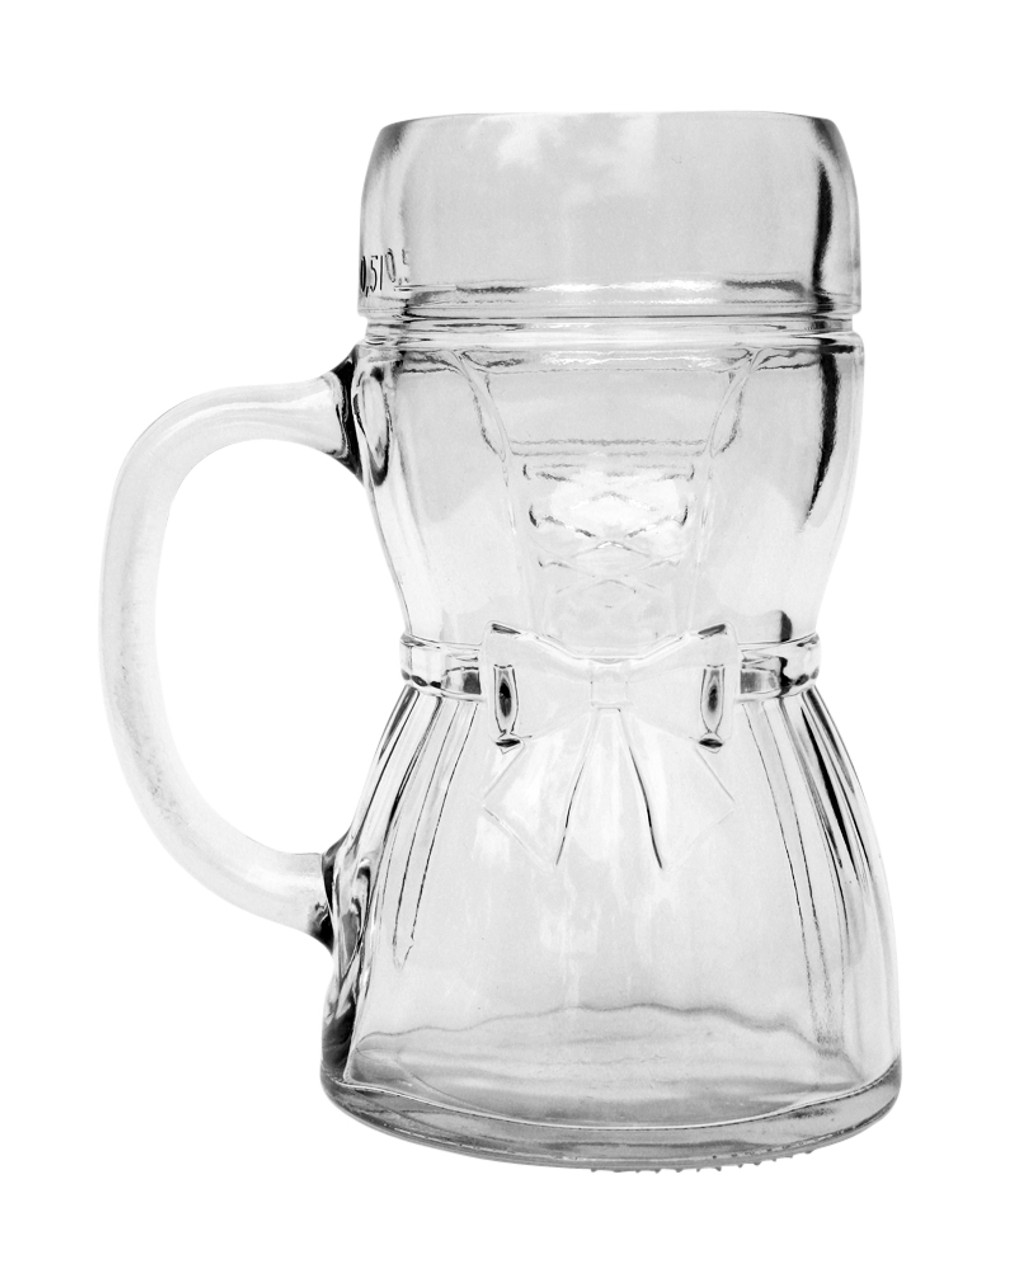 Back of Glass Dirndl Mug Revealing Skirt Pleats, Bow and Lacing